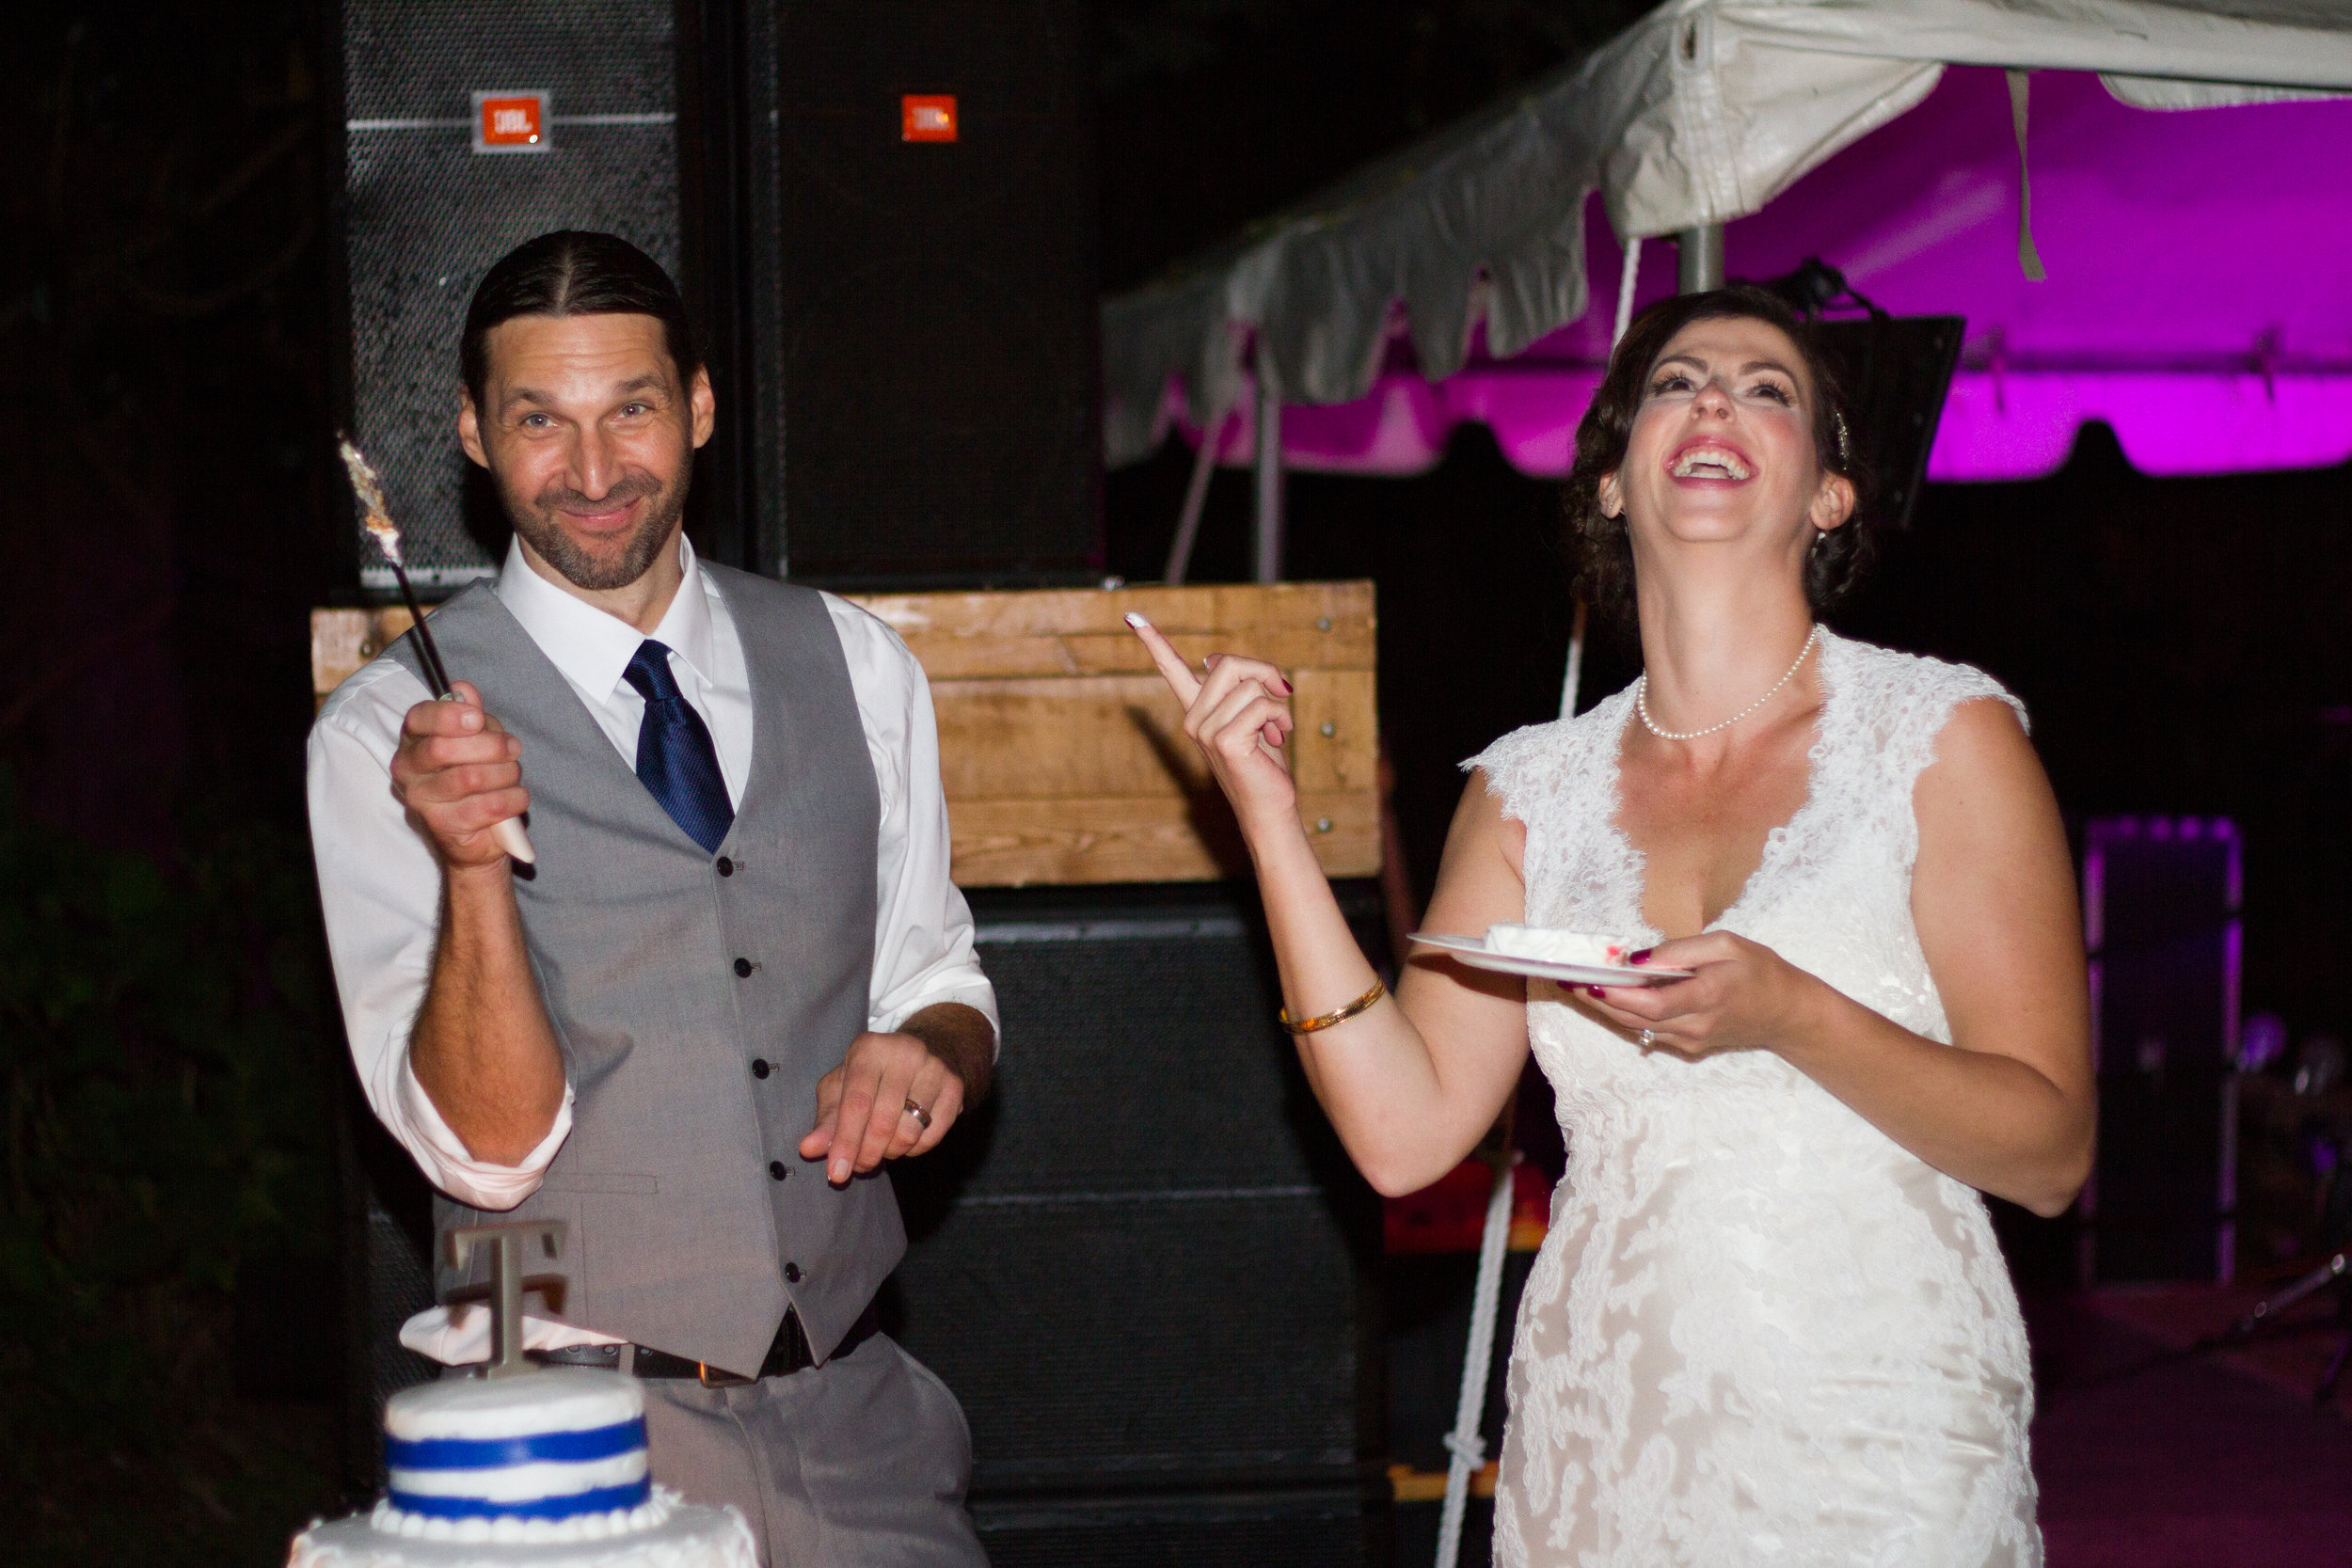 Jacqueline and Shawn Wedding (507 of 597).jpg